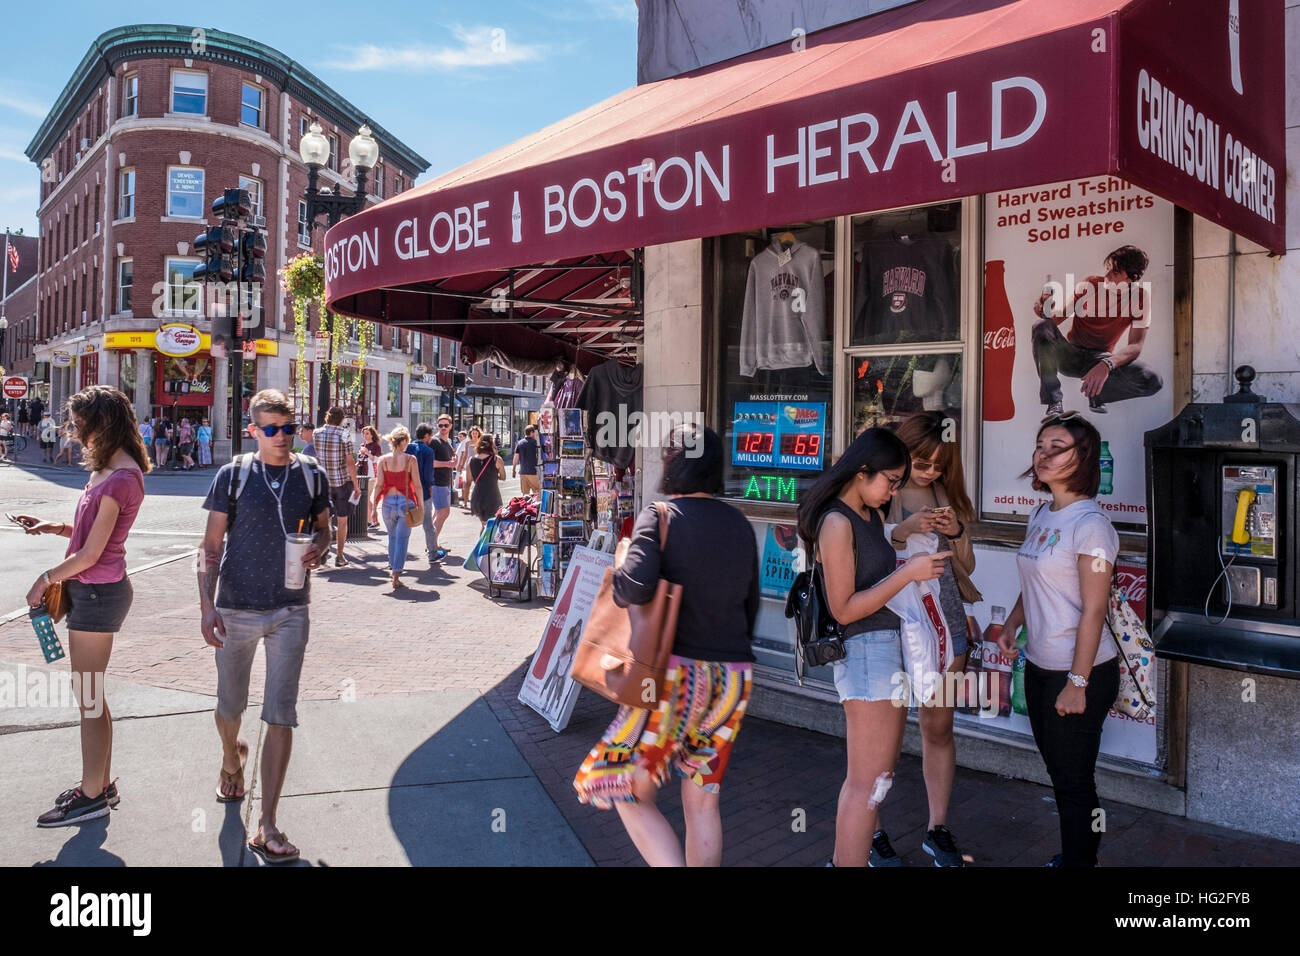 Harvard Square, Cambridge, Massachusetts - Stock Image